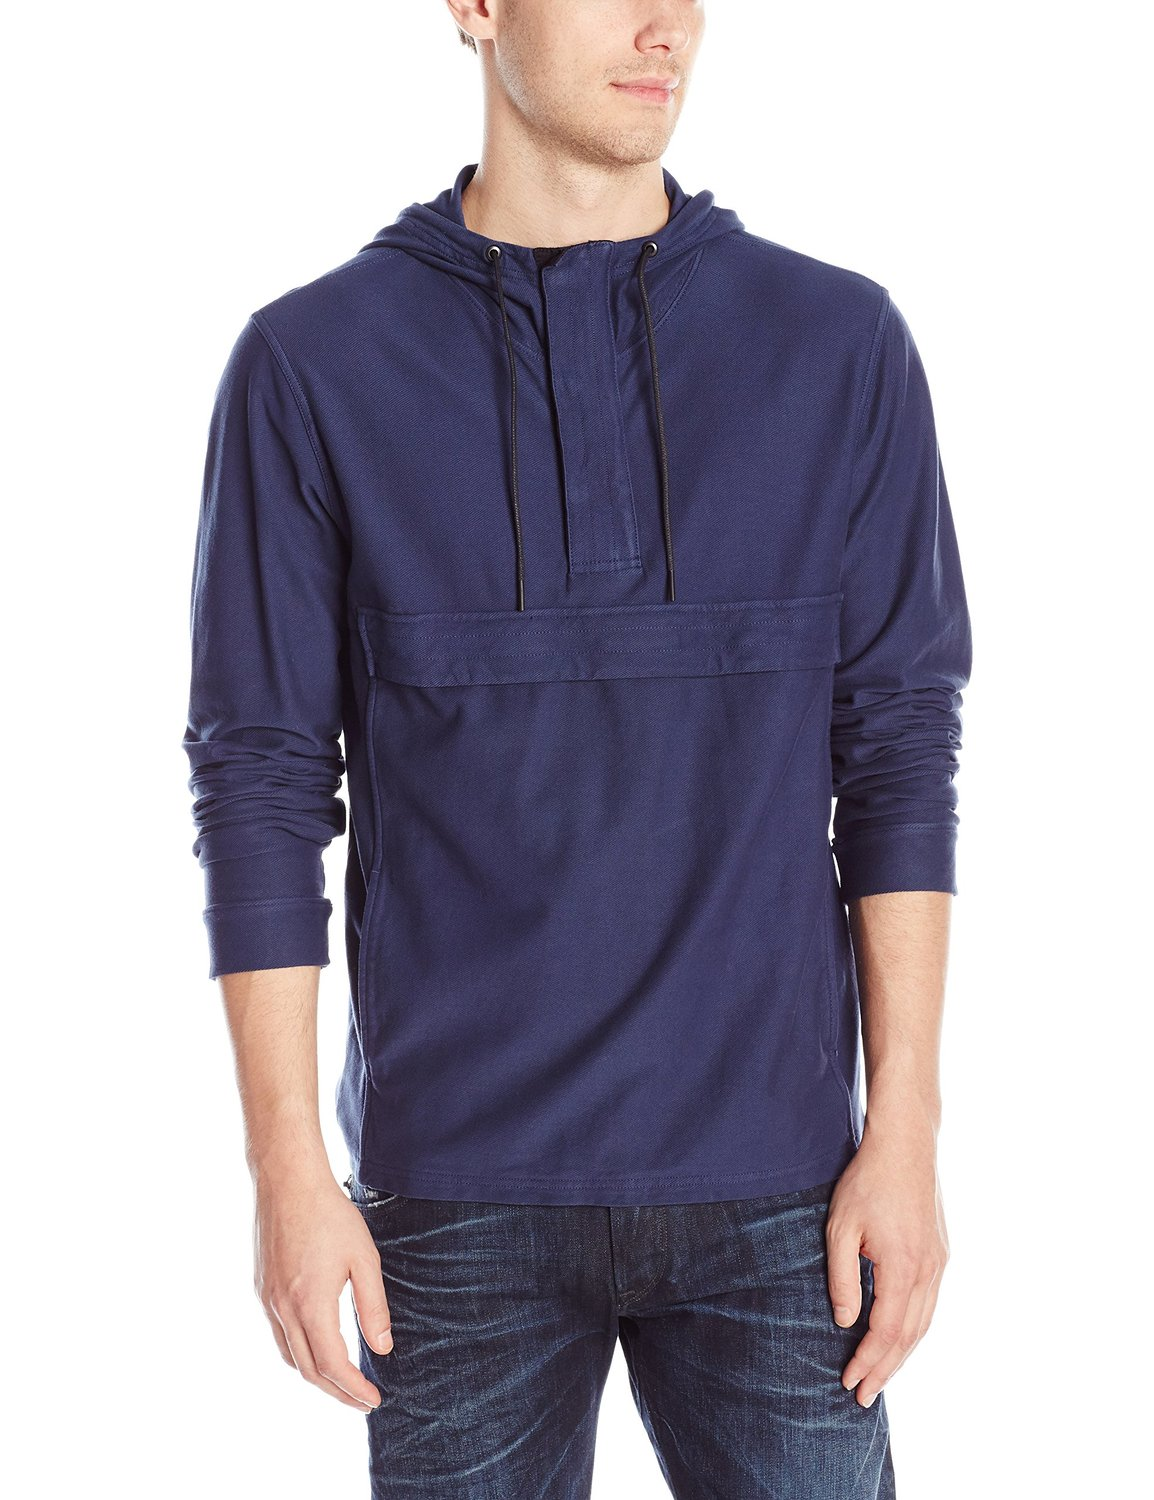 Up to 60% Off Farther's Day Clothing Sale @ Amazon